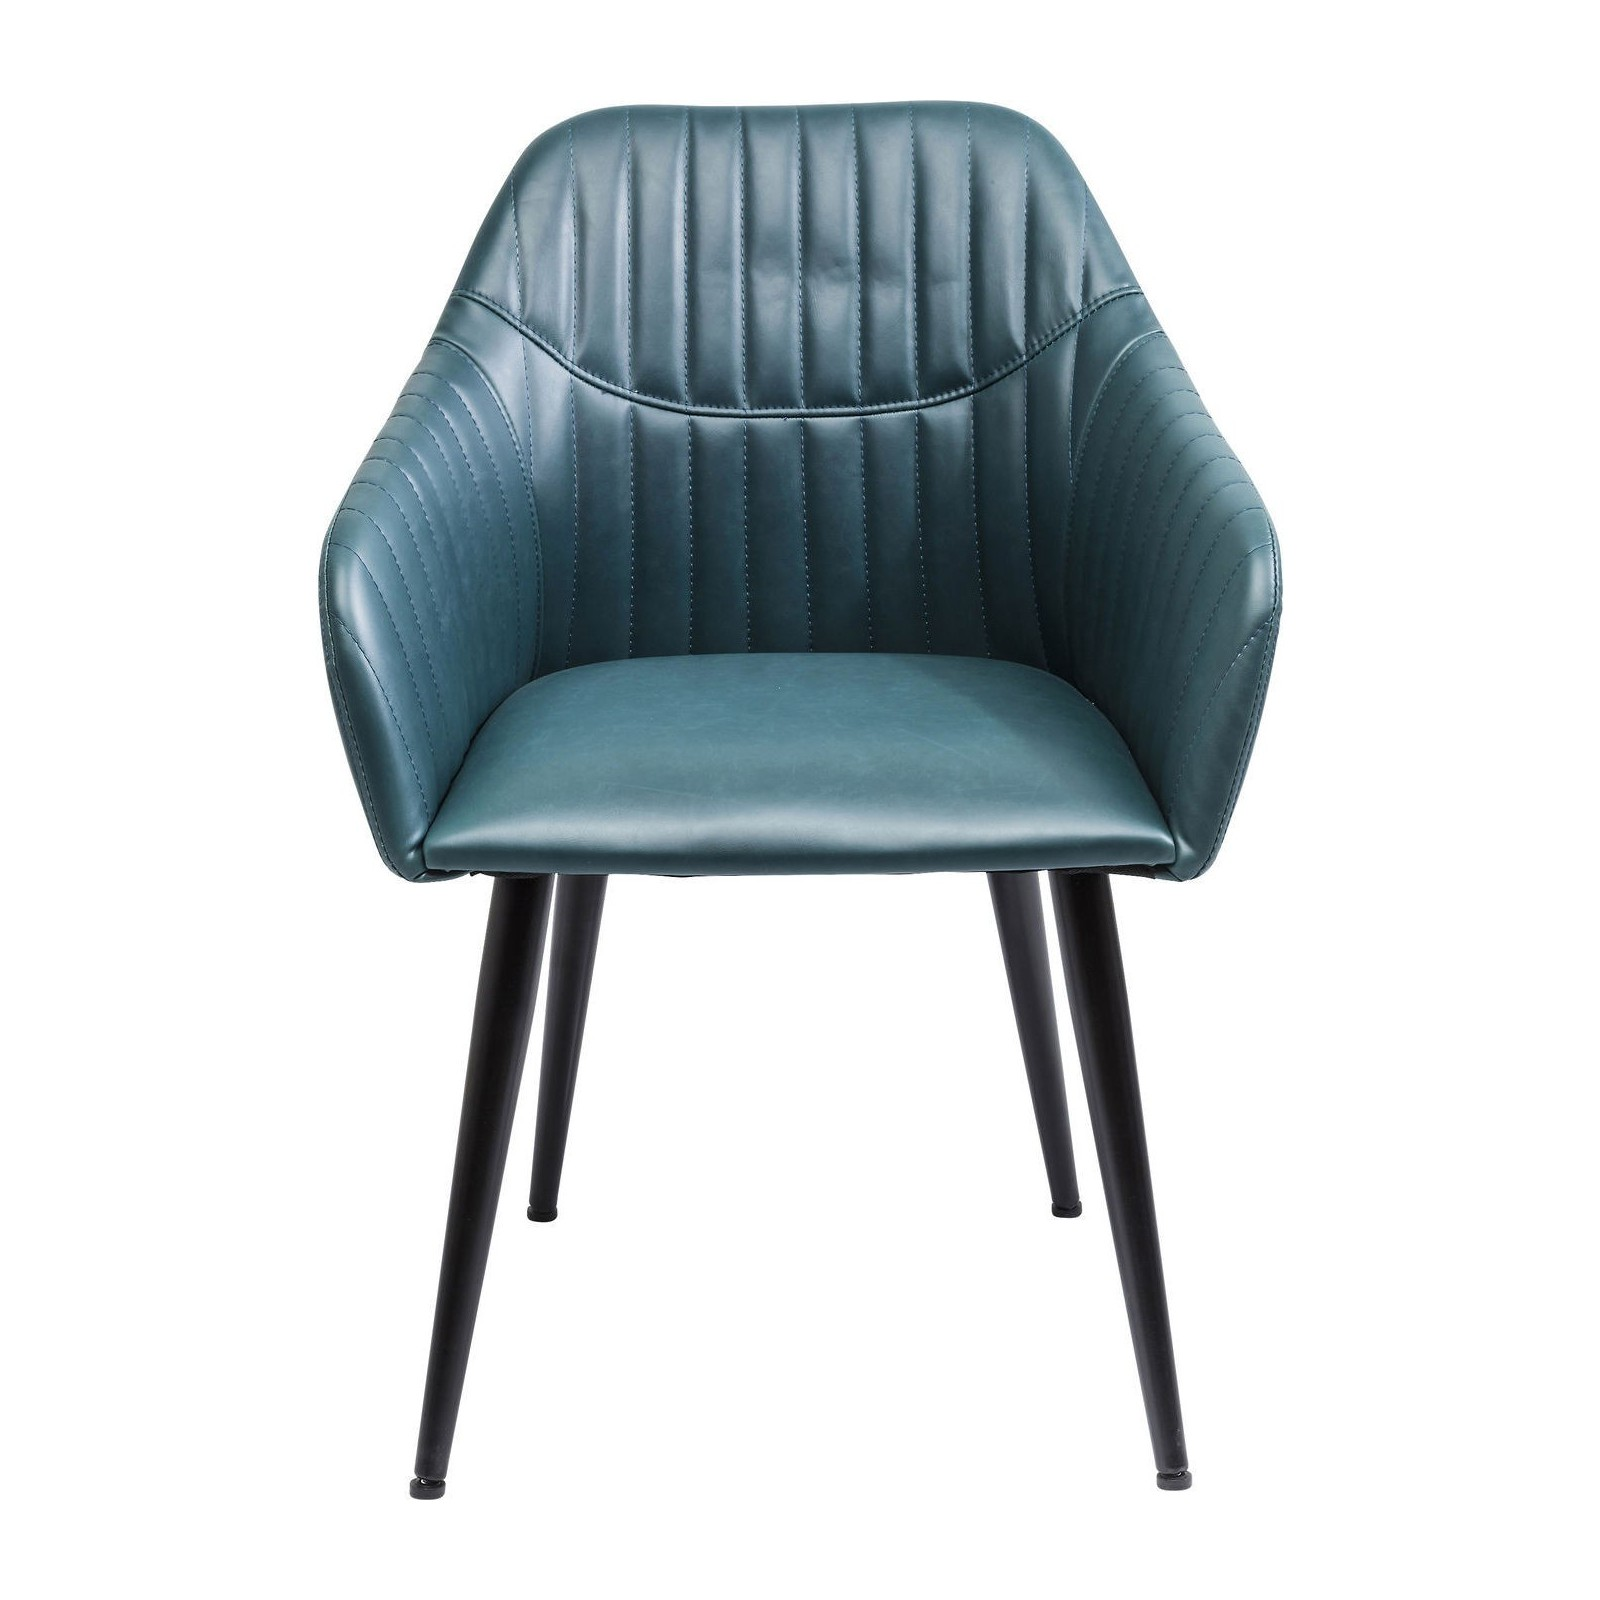 Chaise avec accoudoirs vintage bleue sally kare design for Chaise kare design